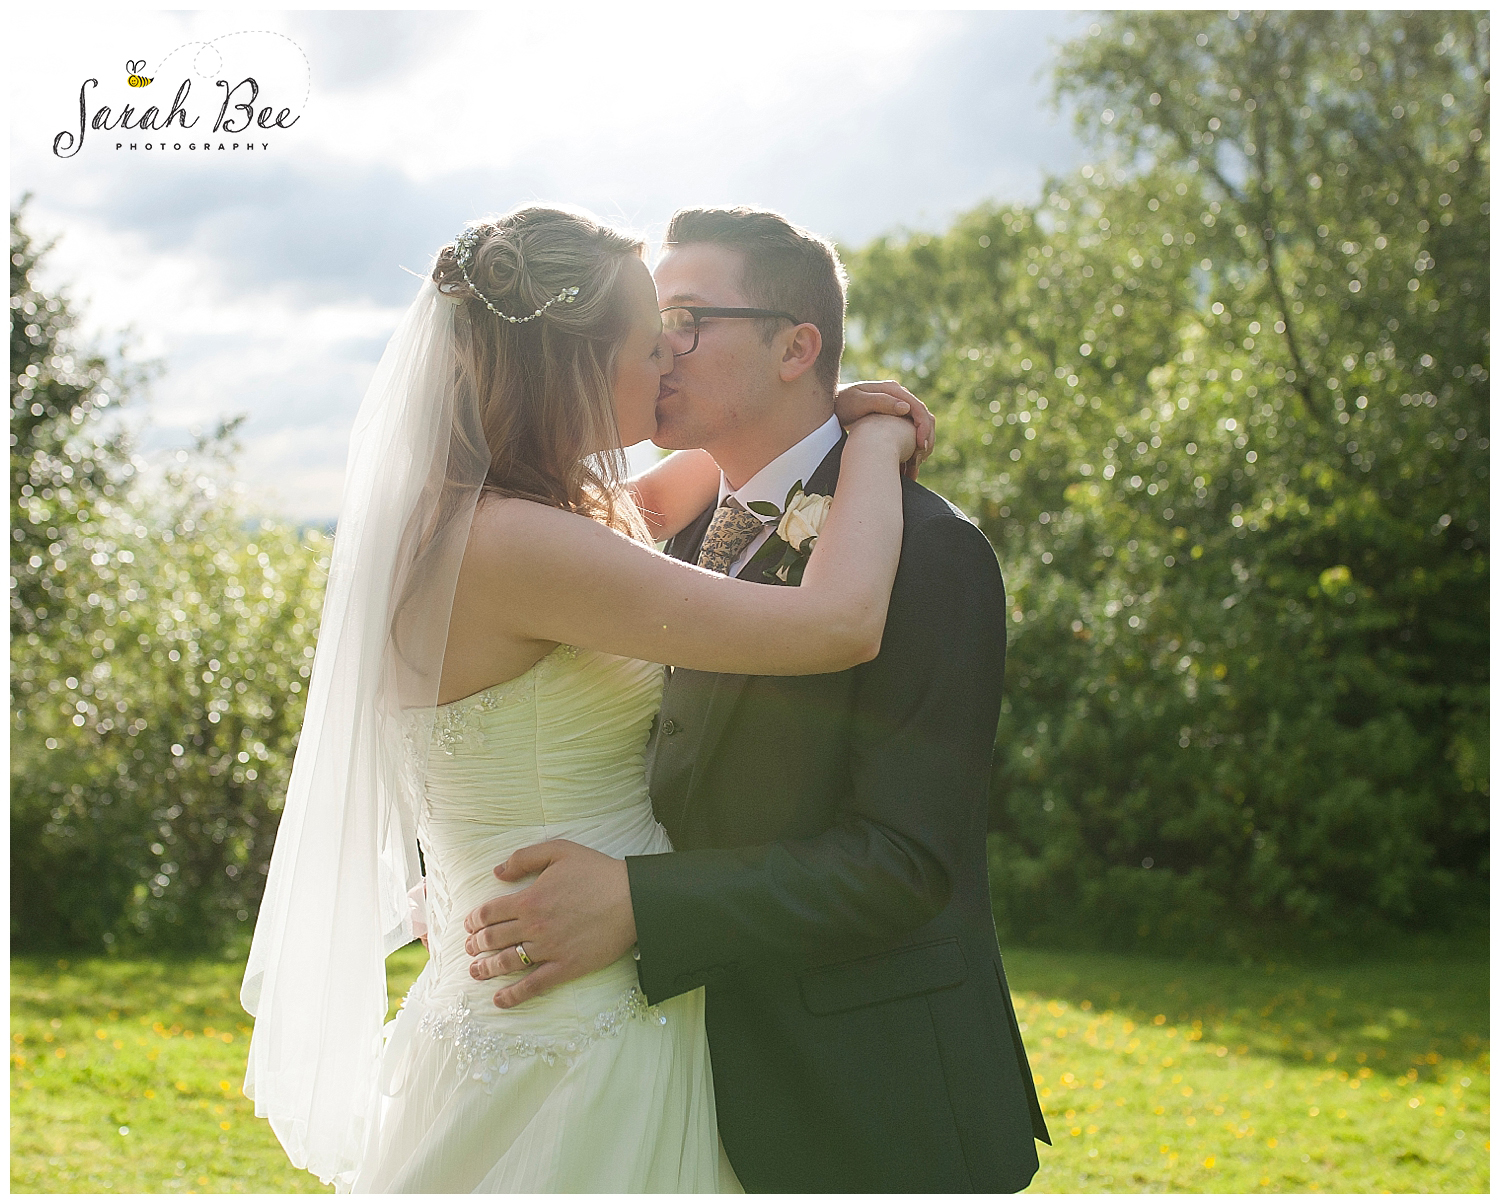 wedding photography with sarah bee photography, Peruga woodheys glossop, documentory photography wedding photographer_0199 copy.jpg